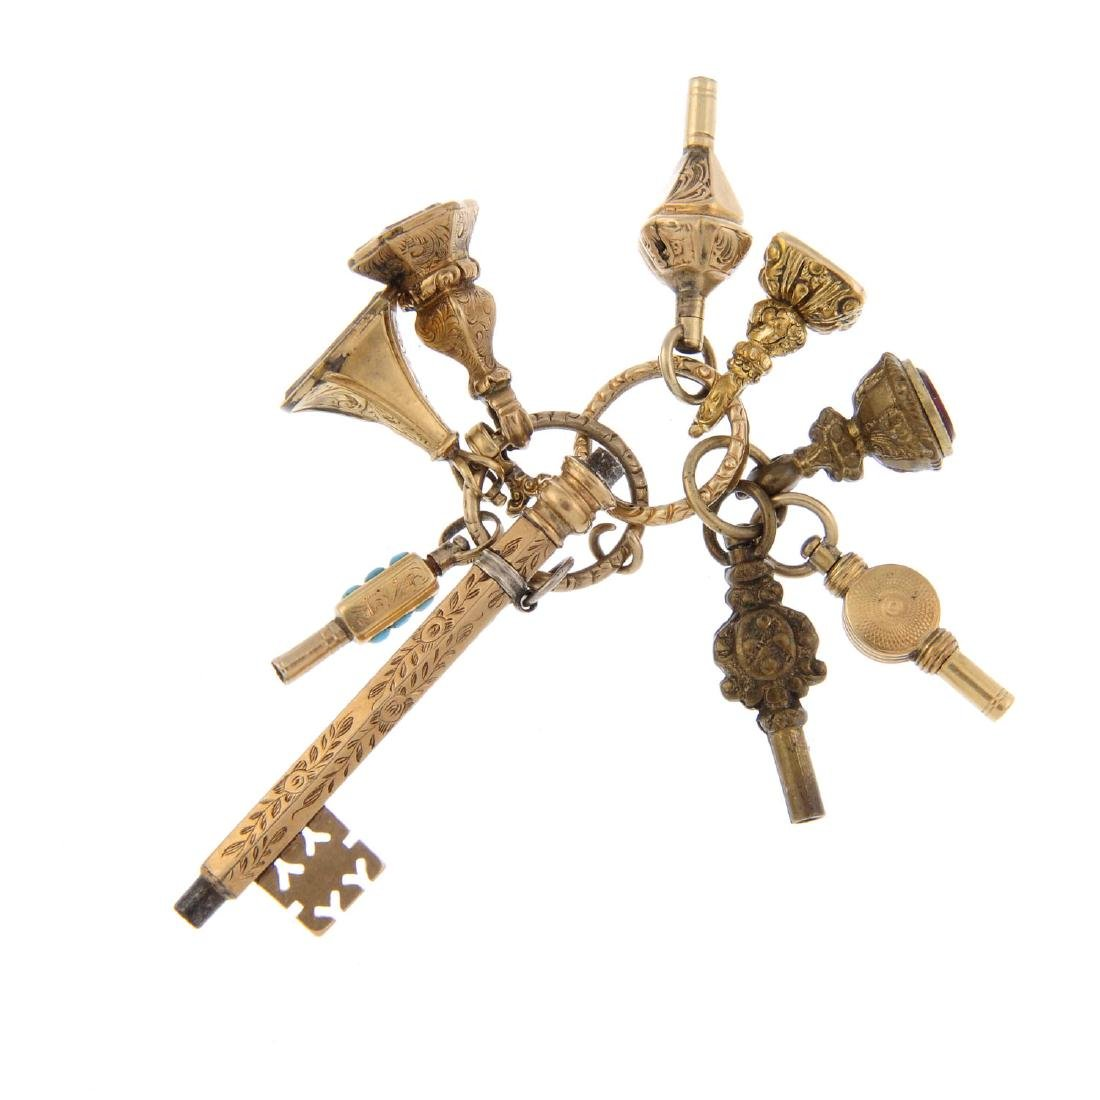 A selection of fobs and watch keys. To include a watch